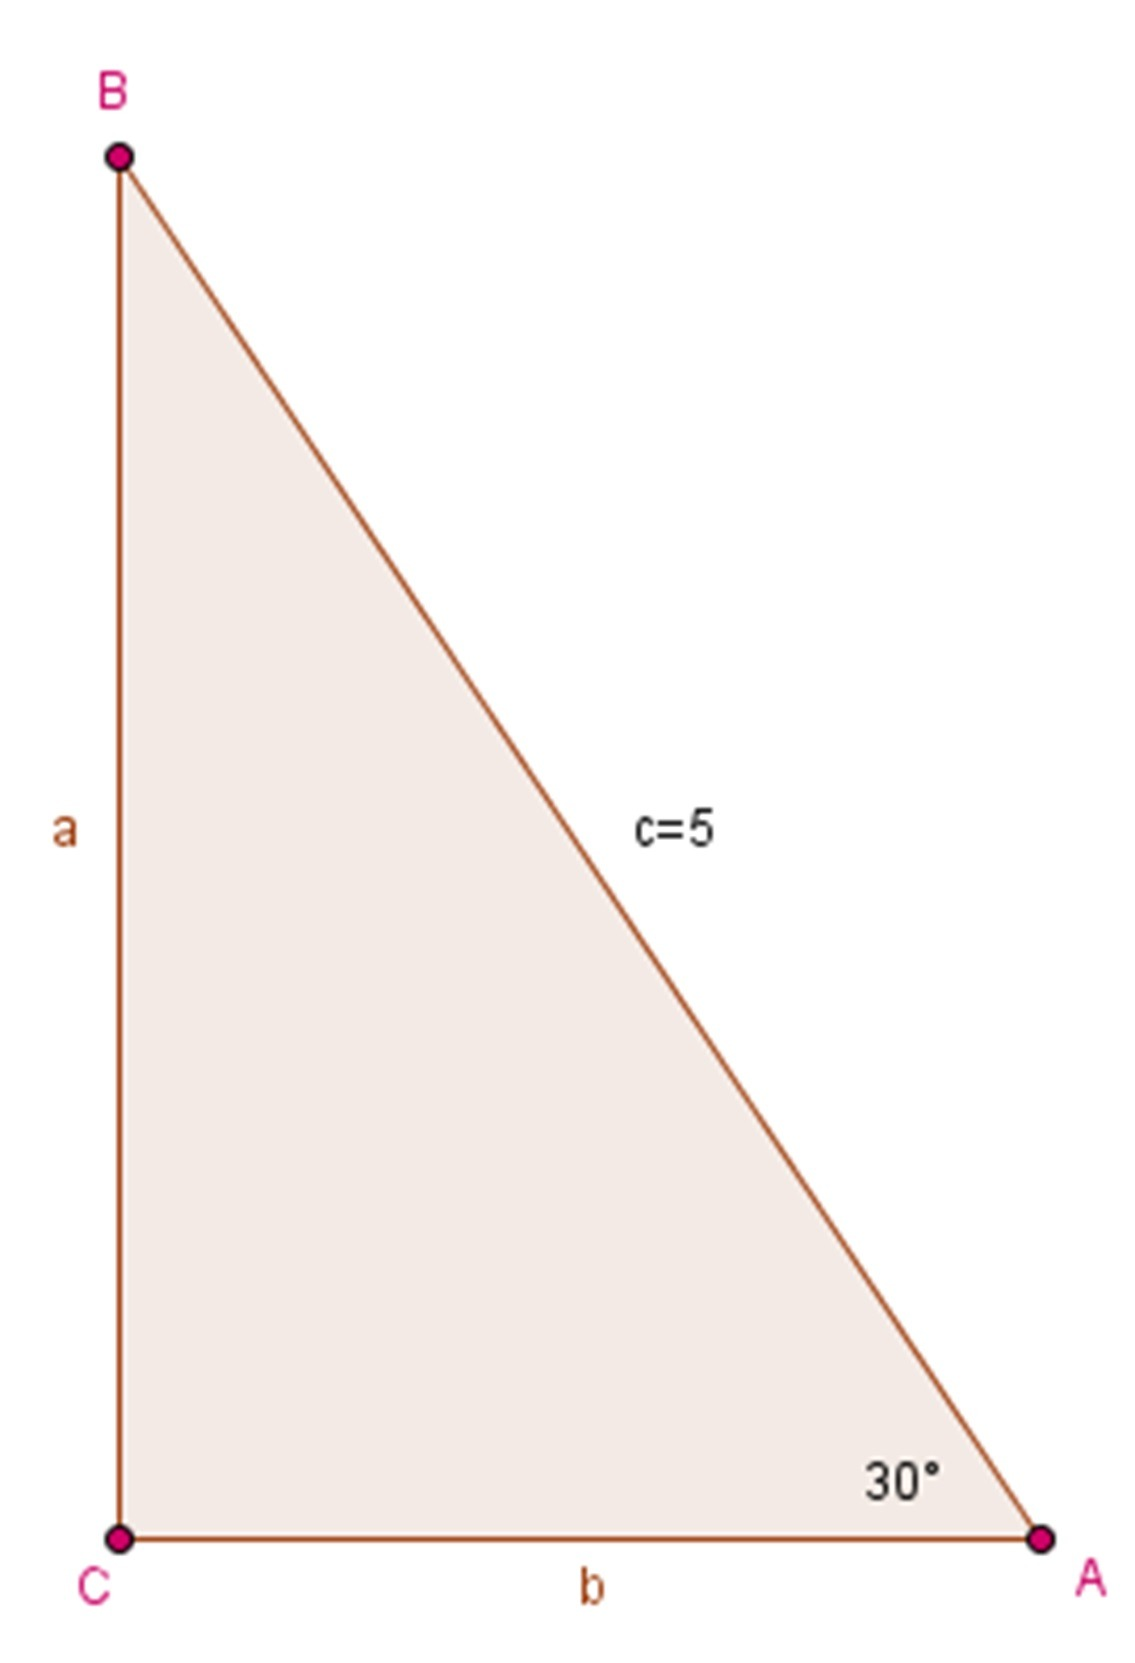 Triangle With Hypotenuse 5